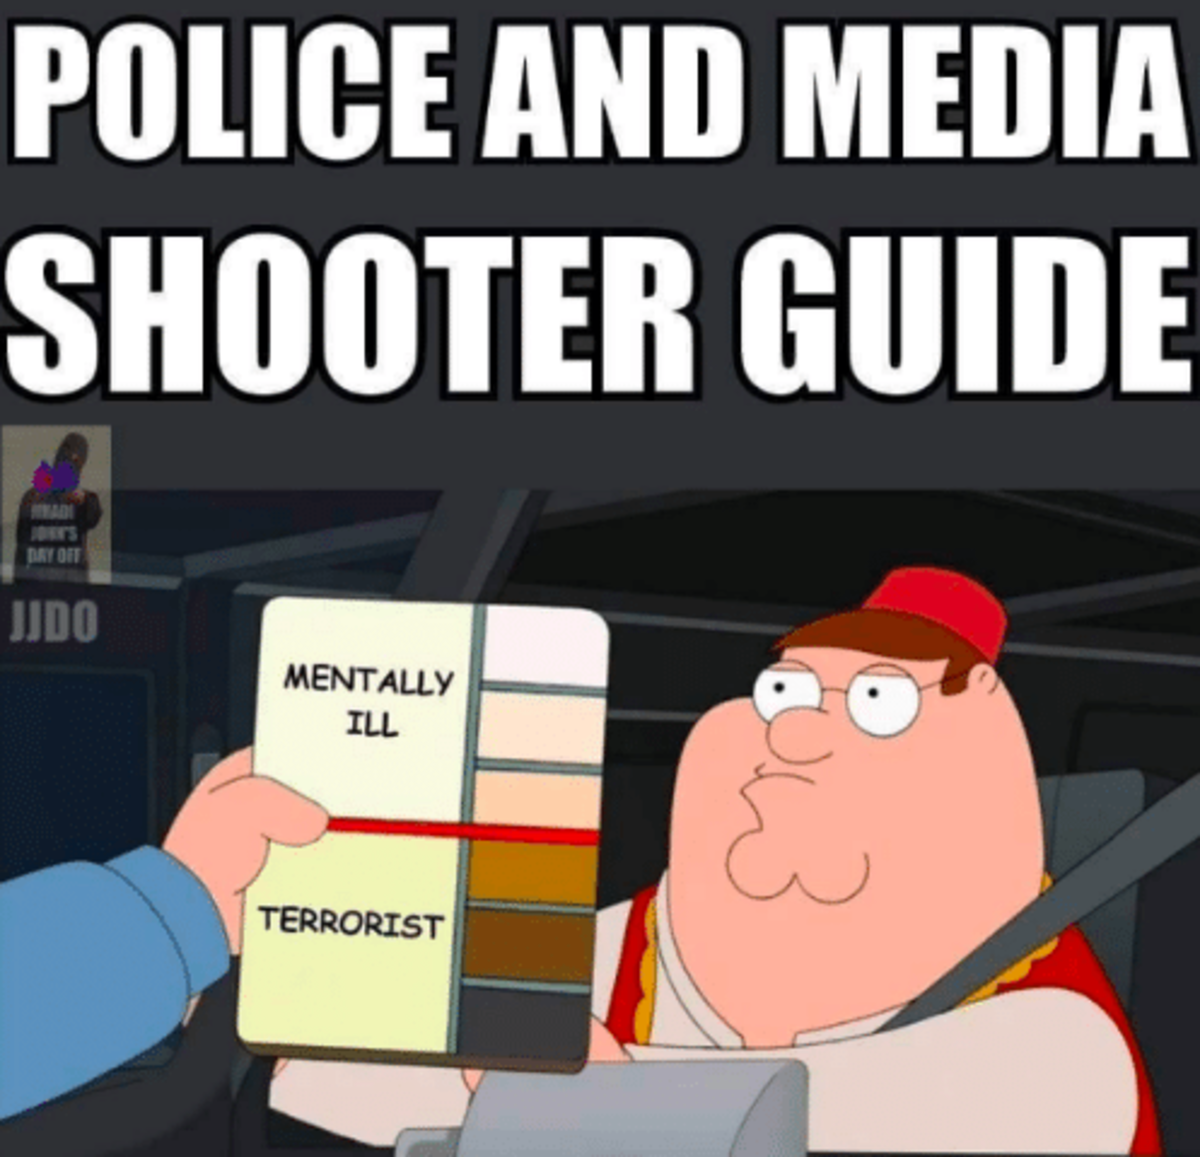 This image, an example of confirmation bias, is often posted on social media when mass shootings occur